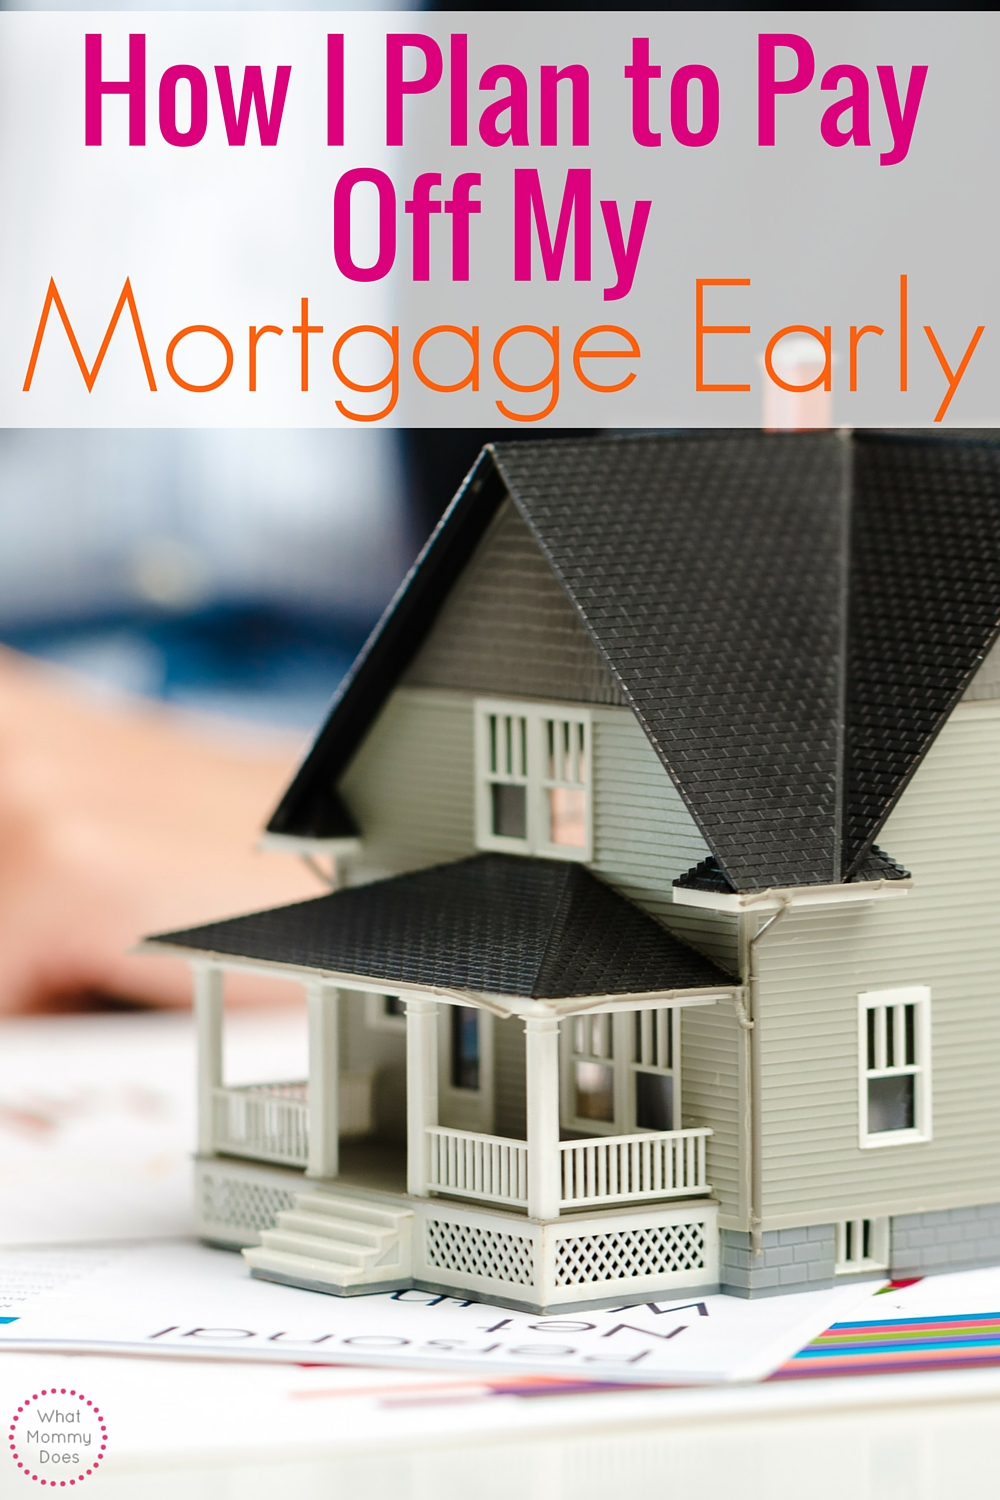 Learn why I plan to pay off my mortgage early. Important tips for homeowners to read!